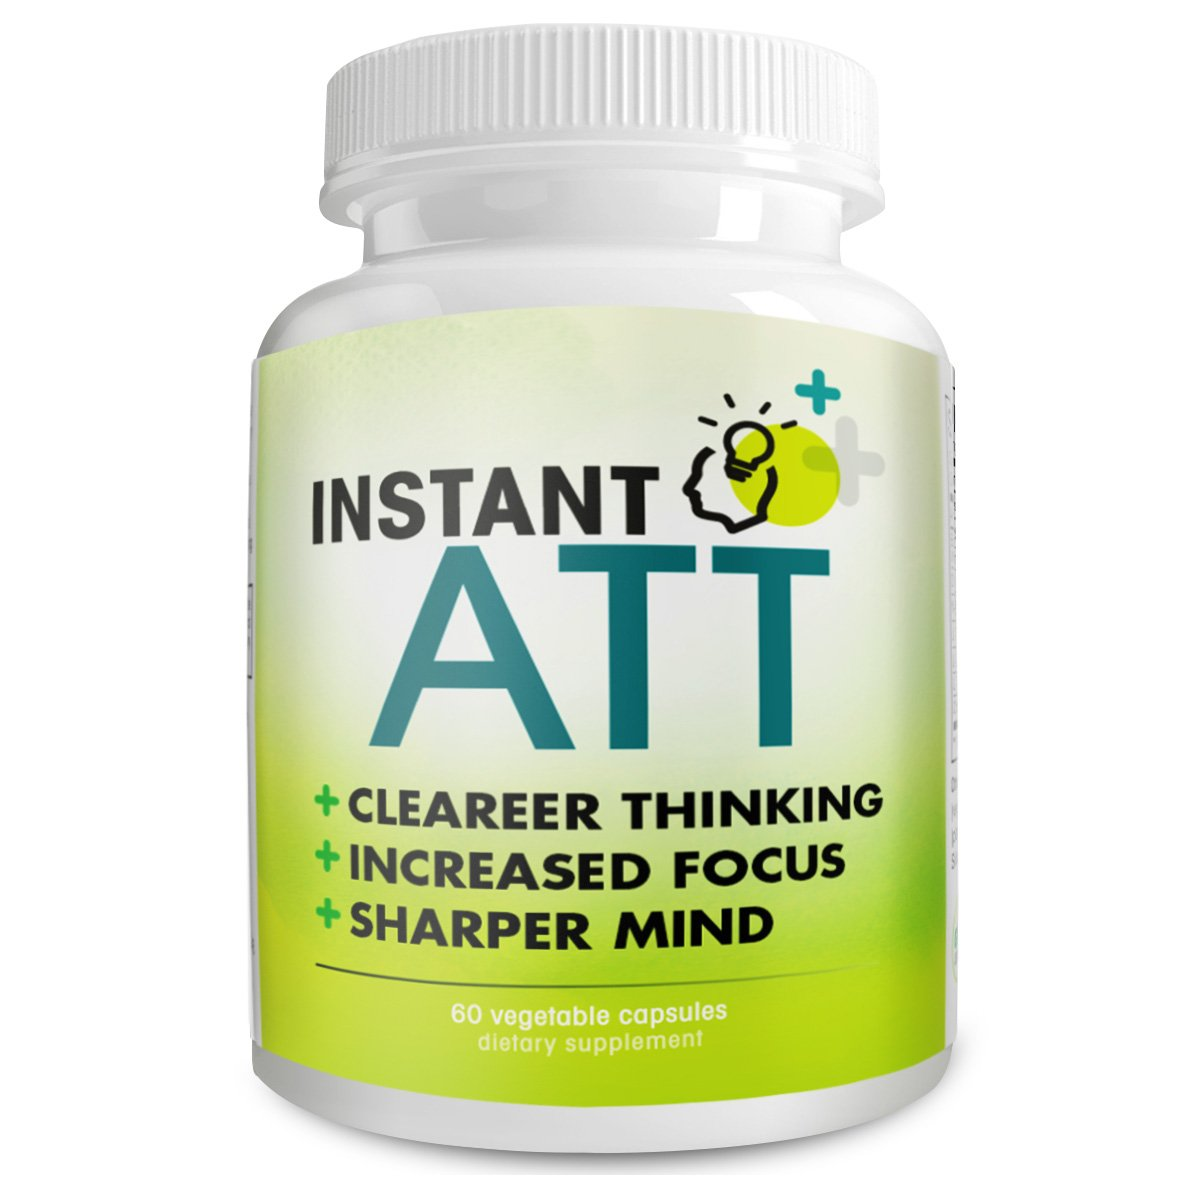 Instant ATT All-Natural Dietary Supplement for Clearer Thinking, Brain Function, Sharper Mind, 30 Capsules